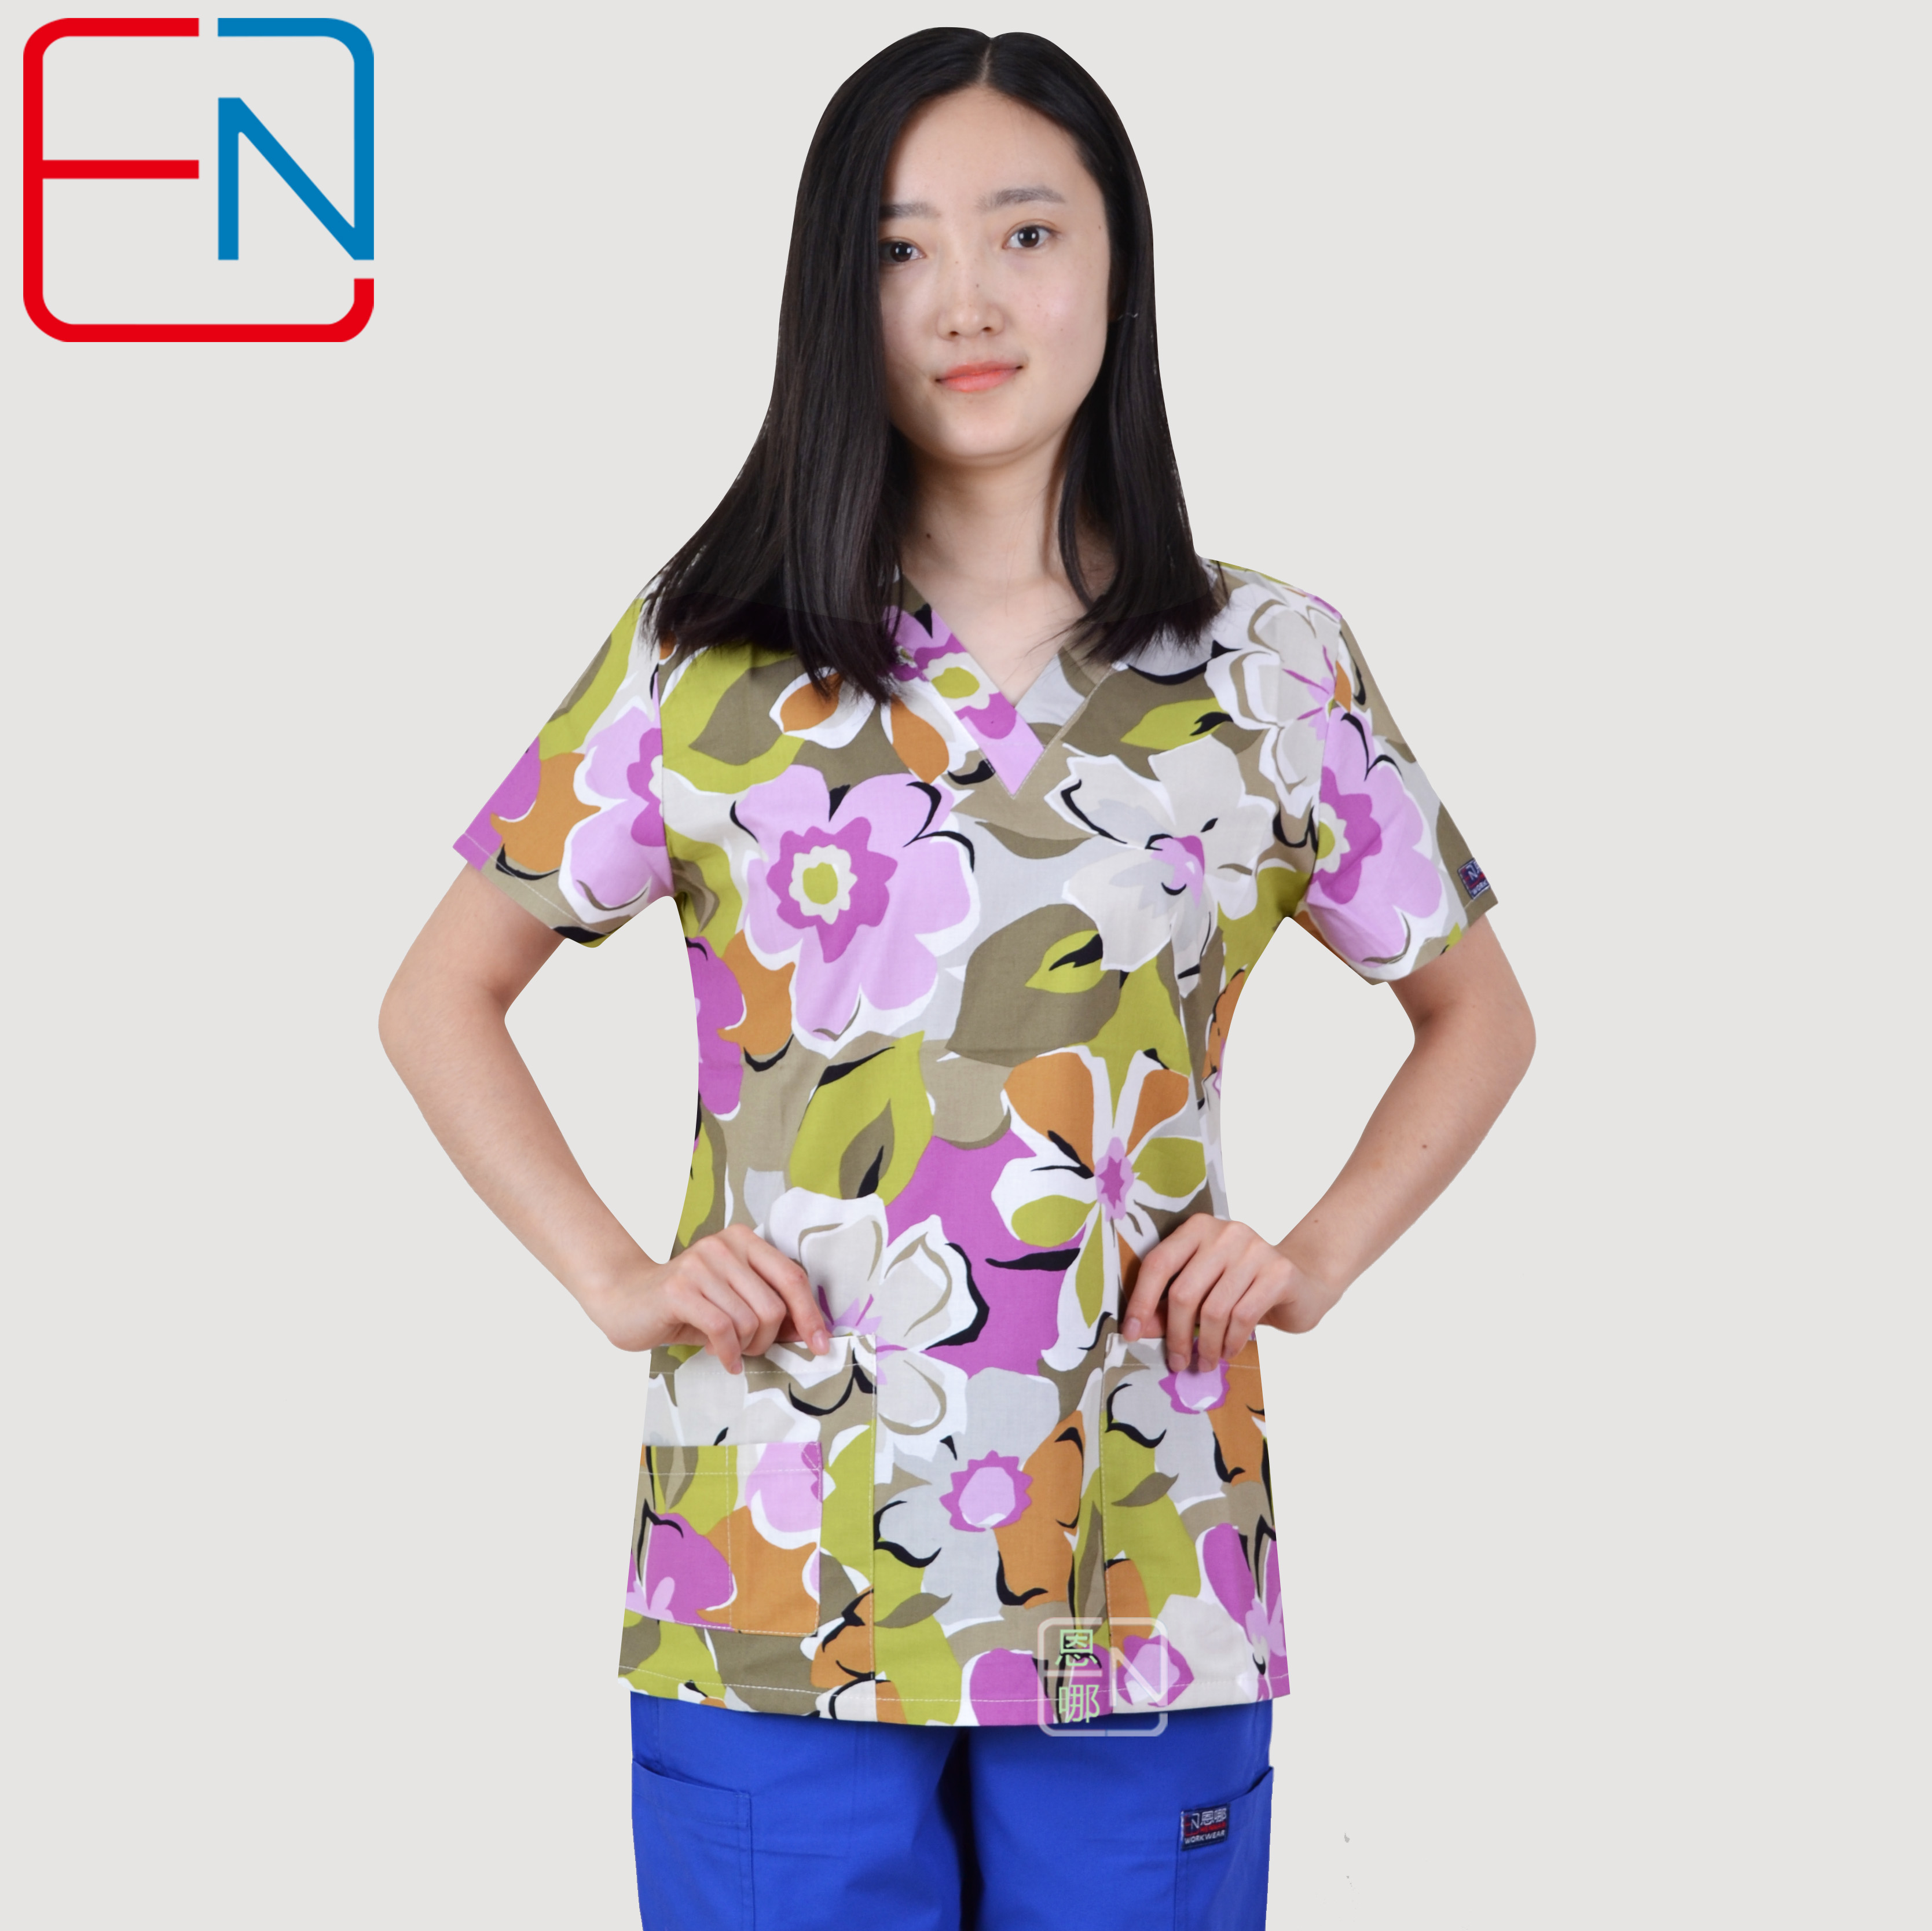 Hennar Women Print Medical Uniform Scrubs Tops Nurse Nursing Clinic Accessories Hospital Medico Clothing Surgical Suit